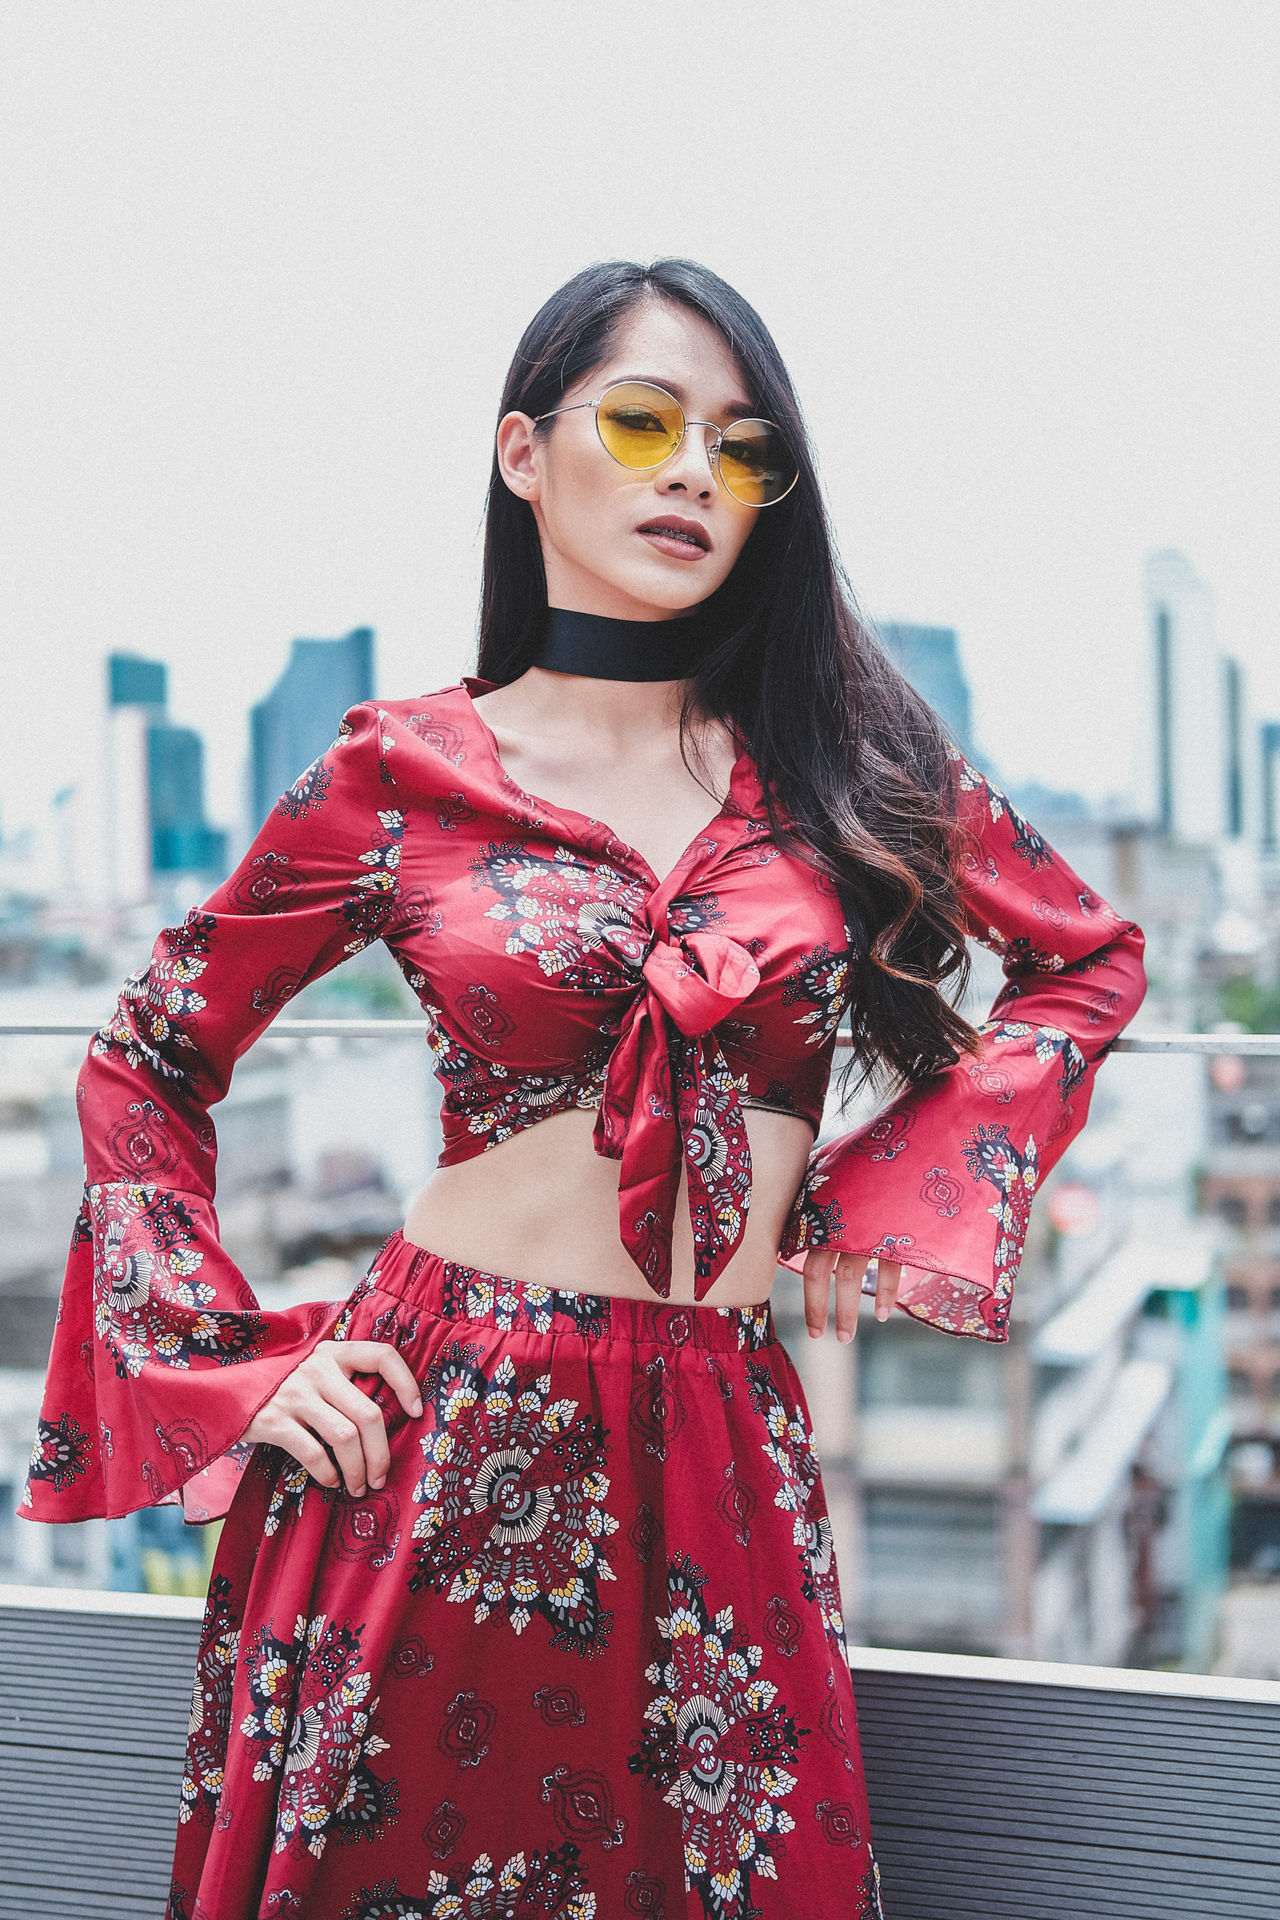 one woman only Red one person cold temperature Fashion only women Adult City Winter Standing front view Adults Only people luxury beautiful woman outdoors portrait beauty glamour young adult